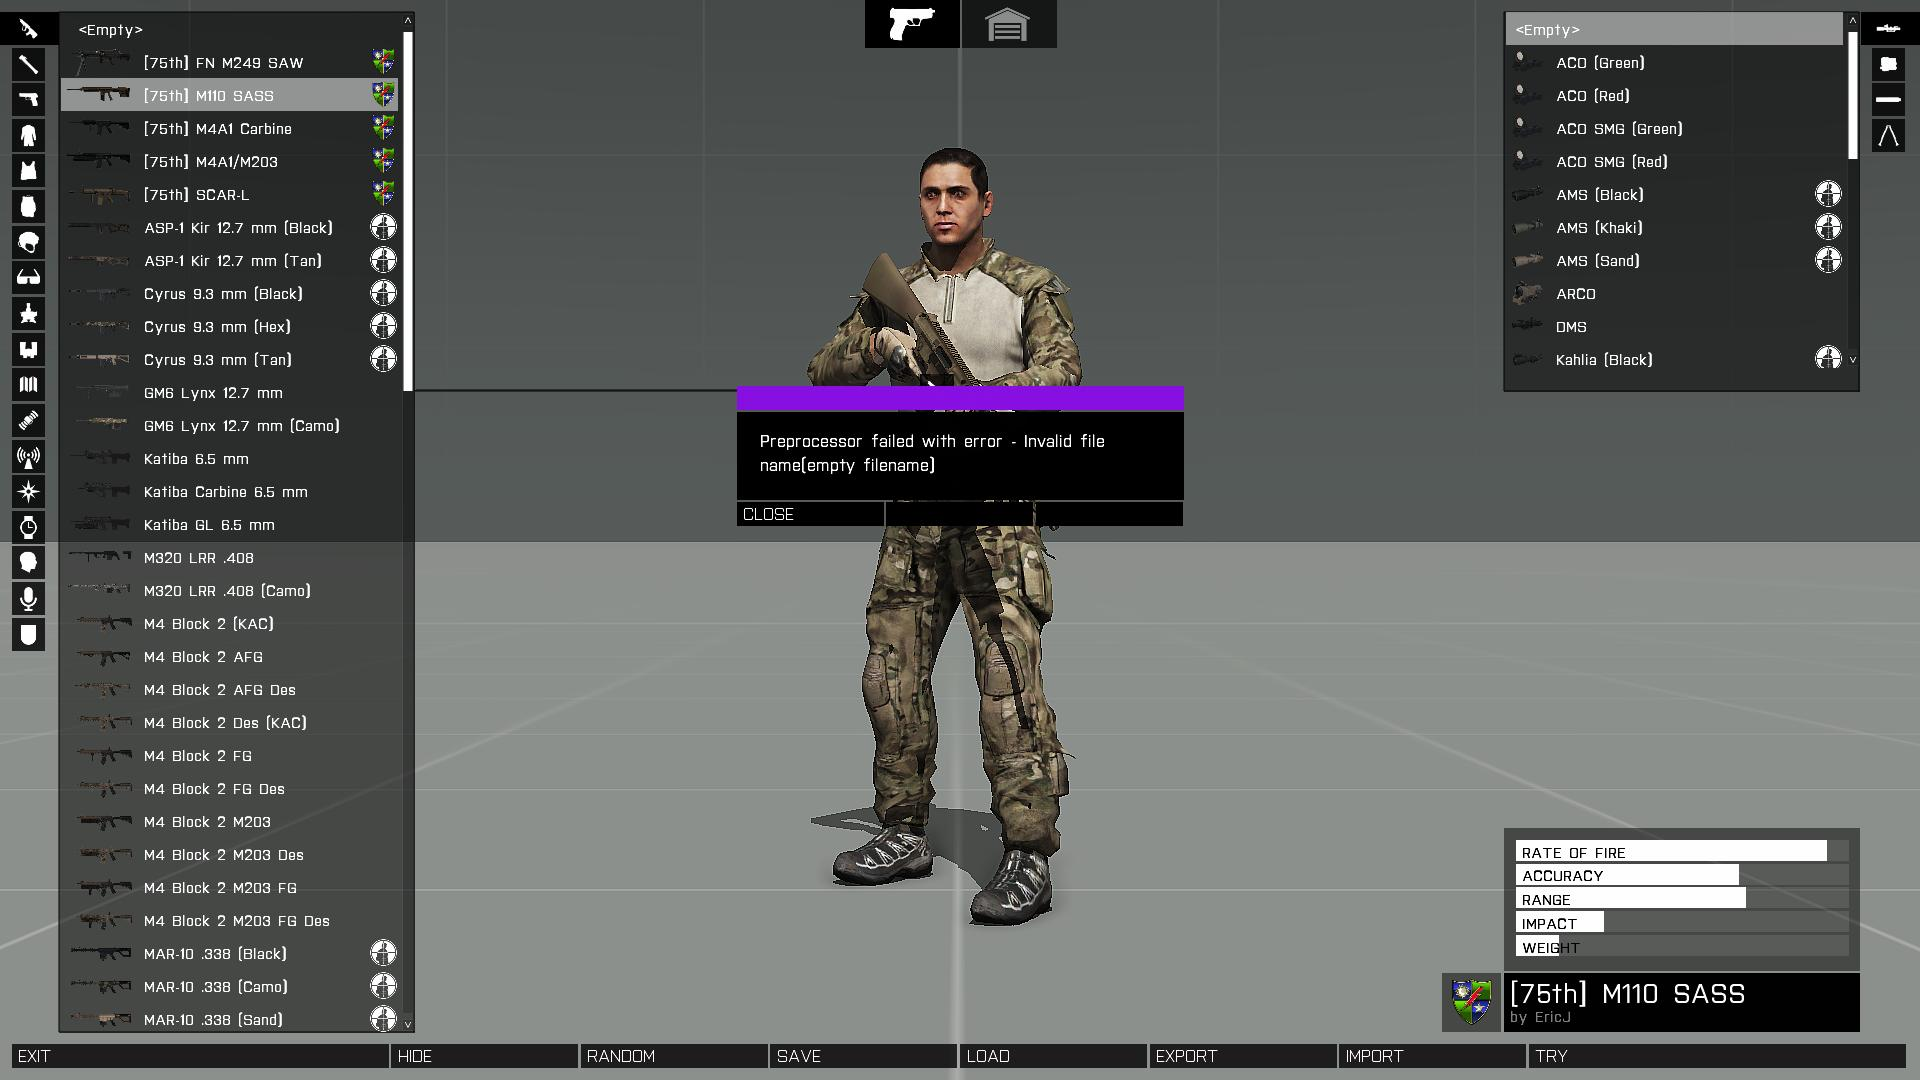 arma3_2016_01_30_17_26_02_59_by_dissizit